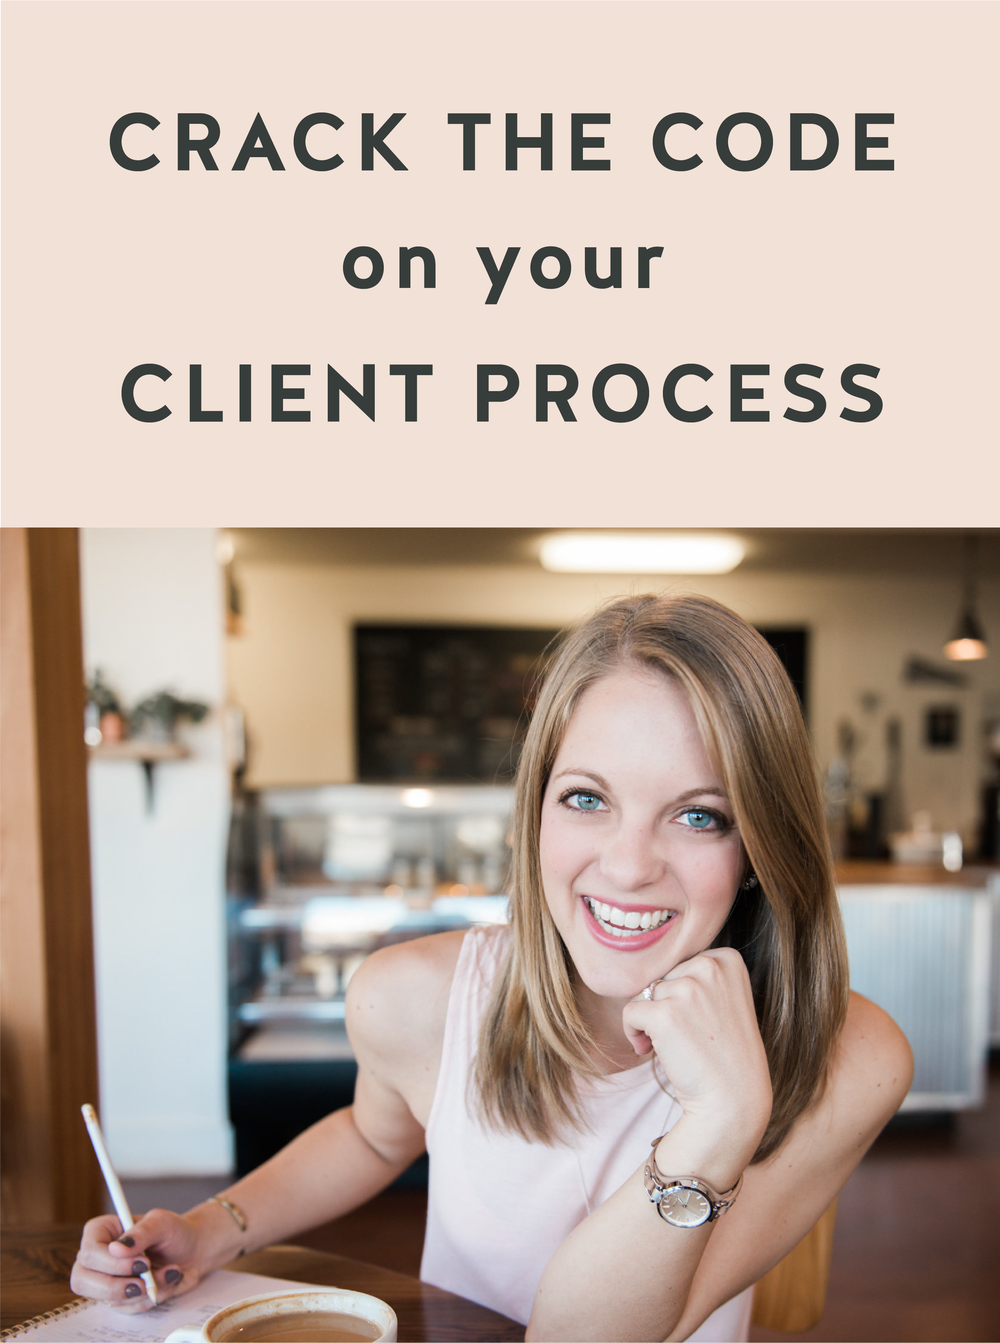 Crack the Code on Your Client Process